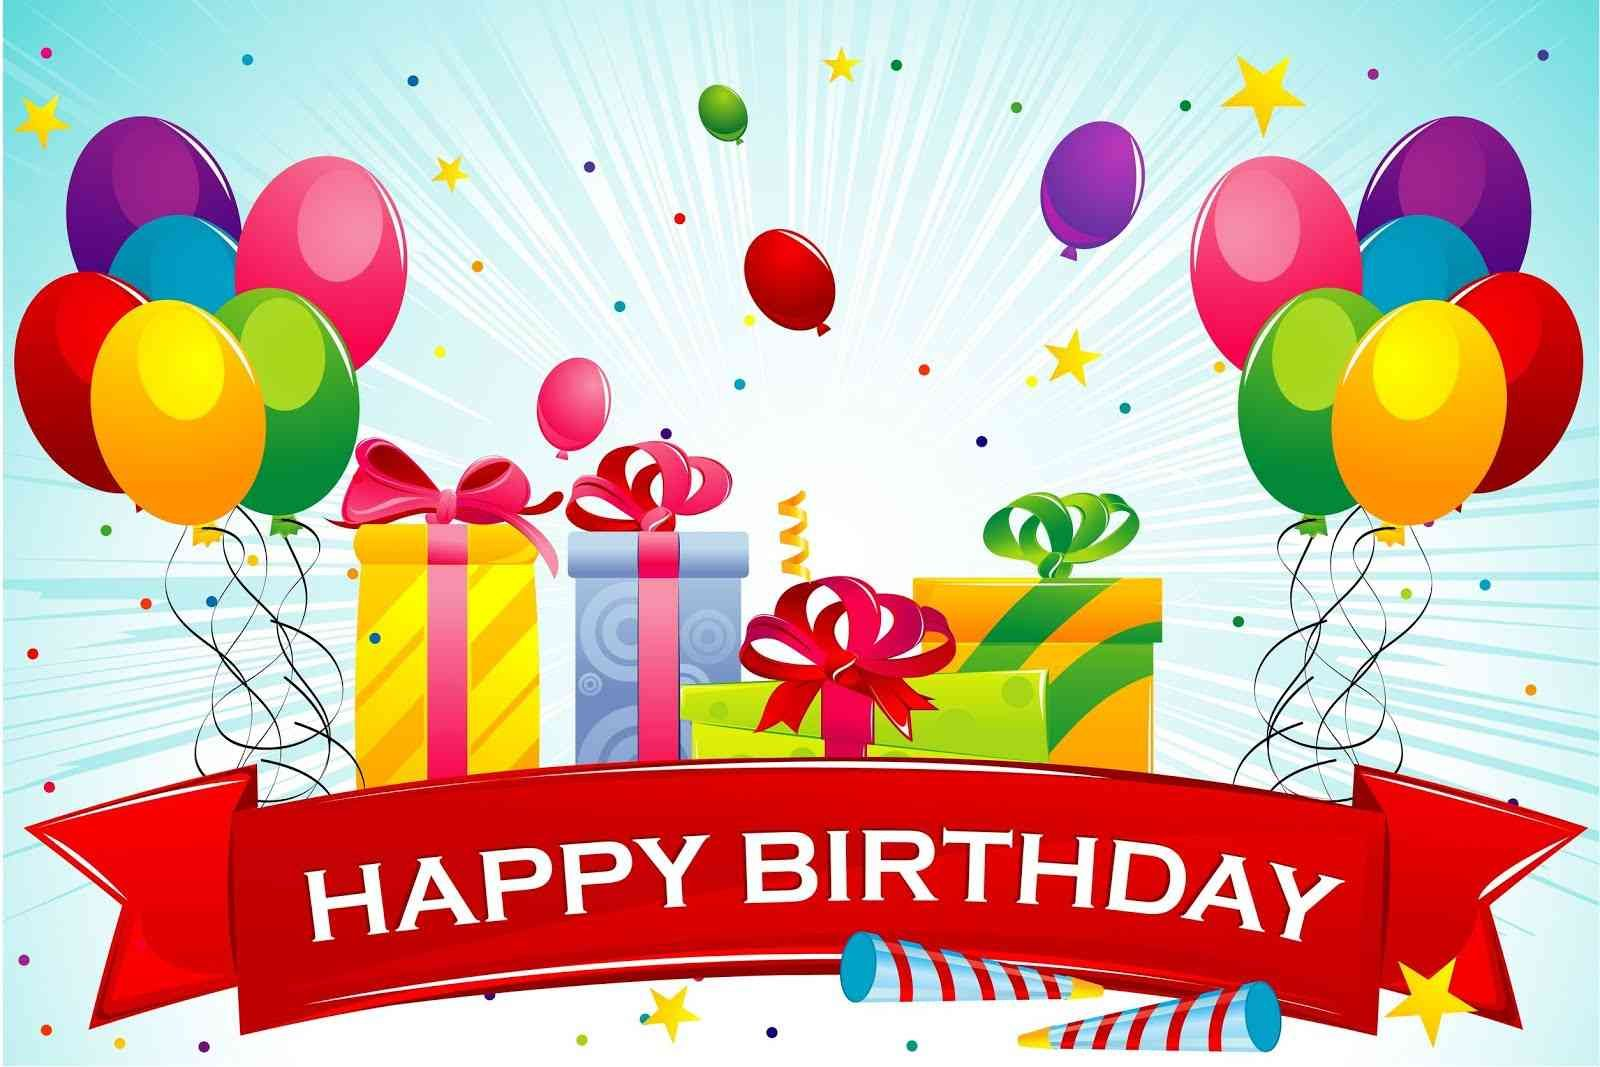 free happy birthday wishes images ; happy-birthday-wishes-wallpaper-3